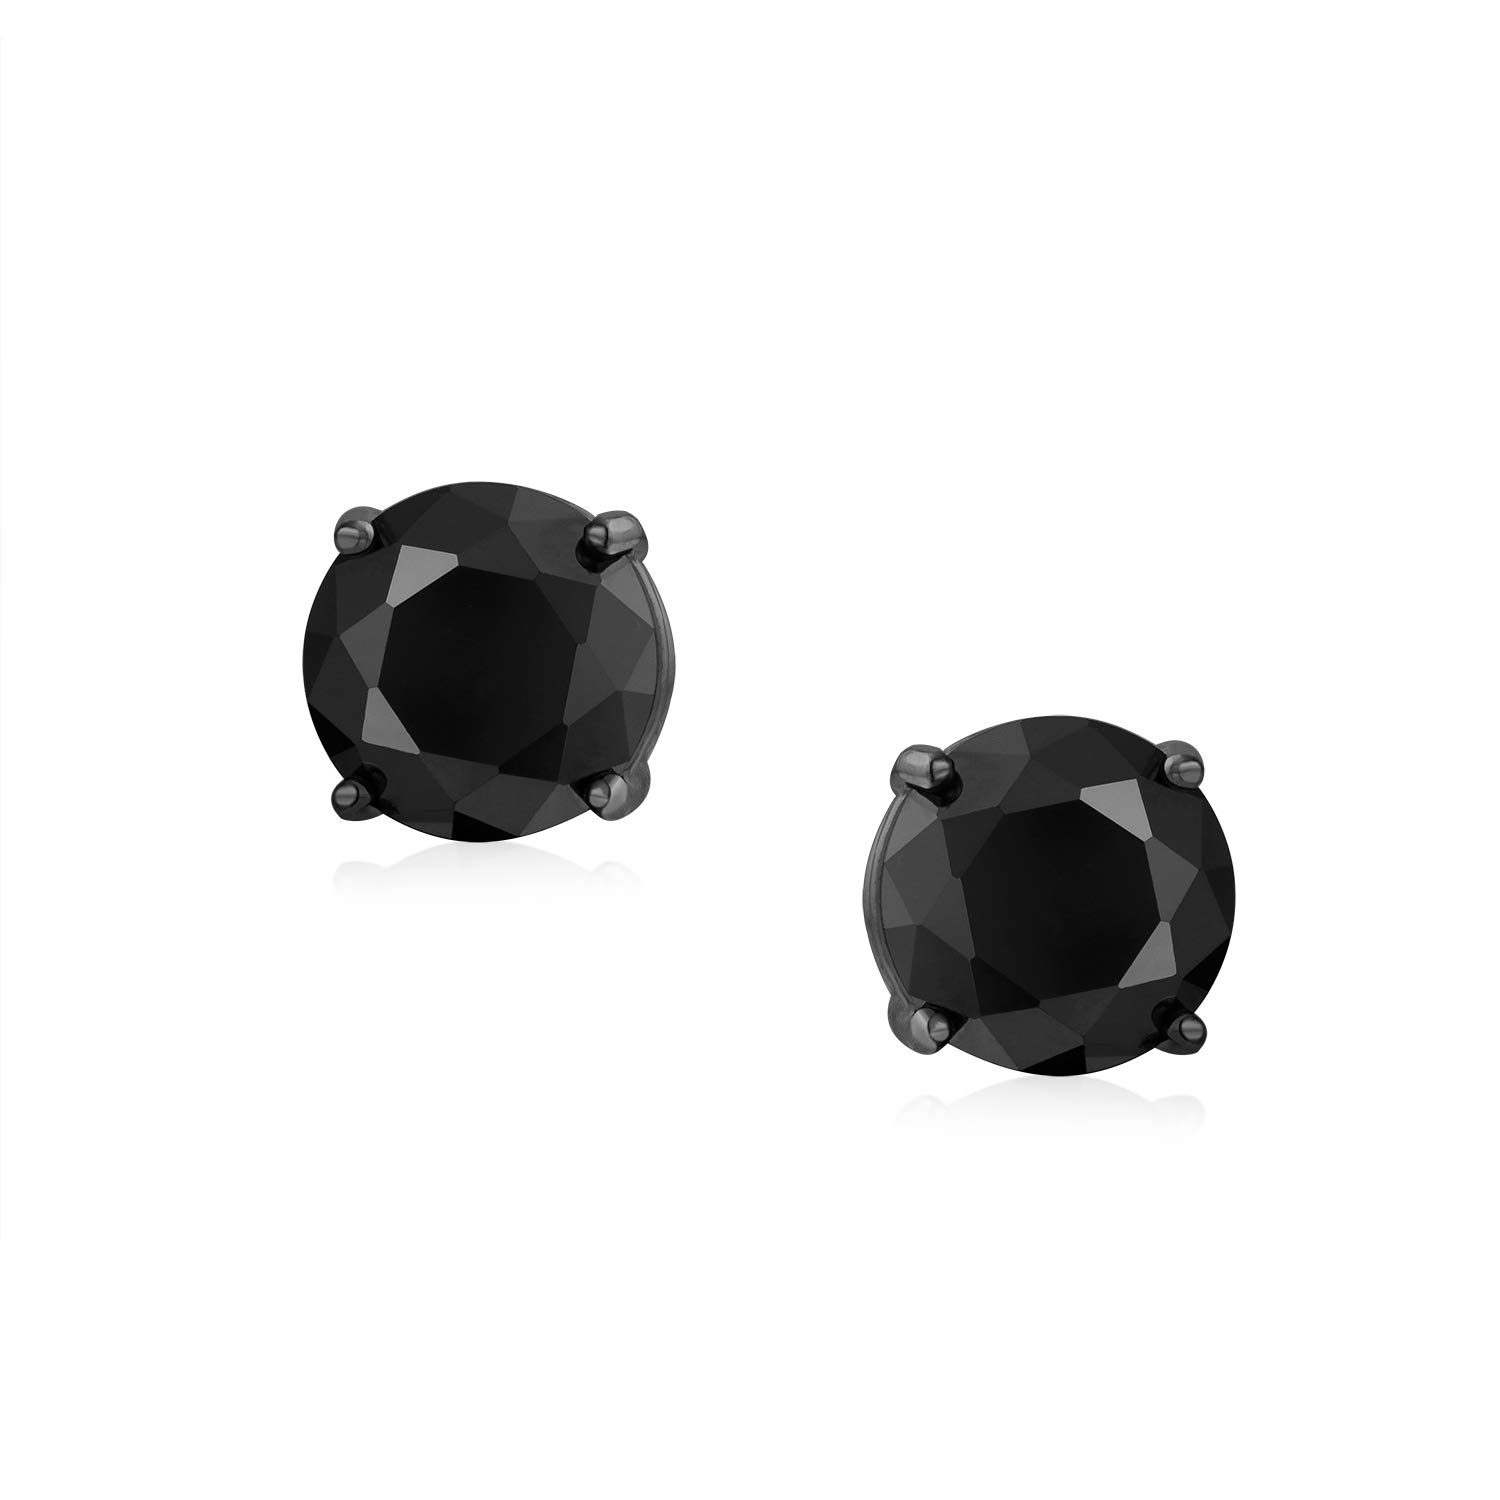 950037b51 Amazon.com: .75CT Black On Black Round Solitaire Cubic Zirconia Stud  Earrings For Men Women CZ Screw Back Plated 925 Sterling Silver: Jewelry